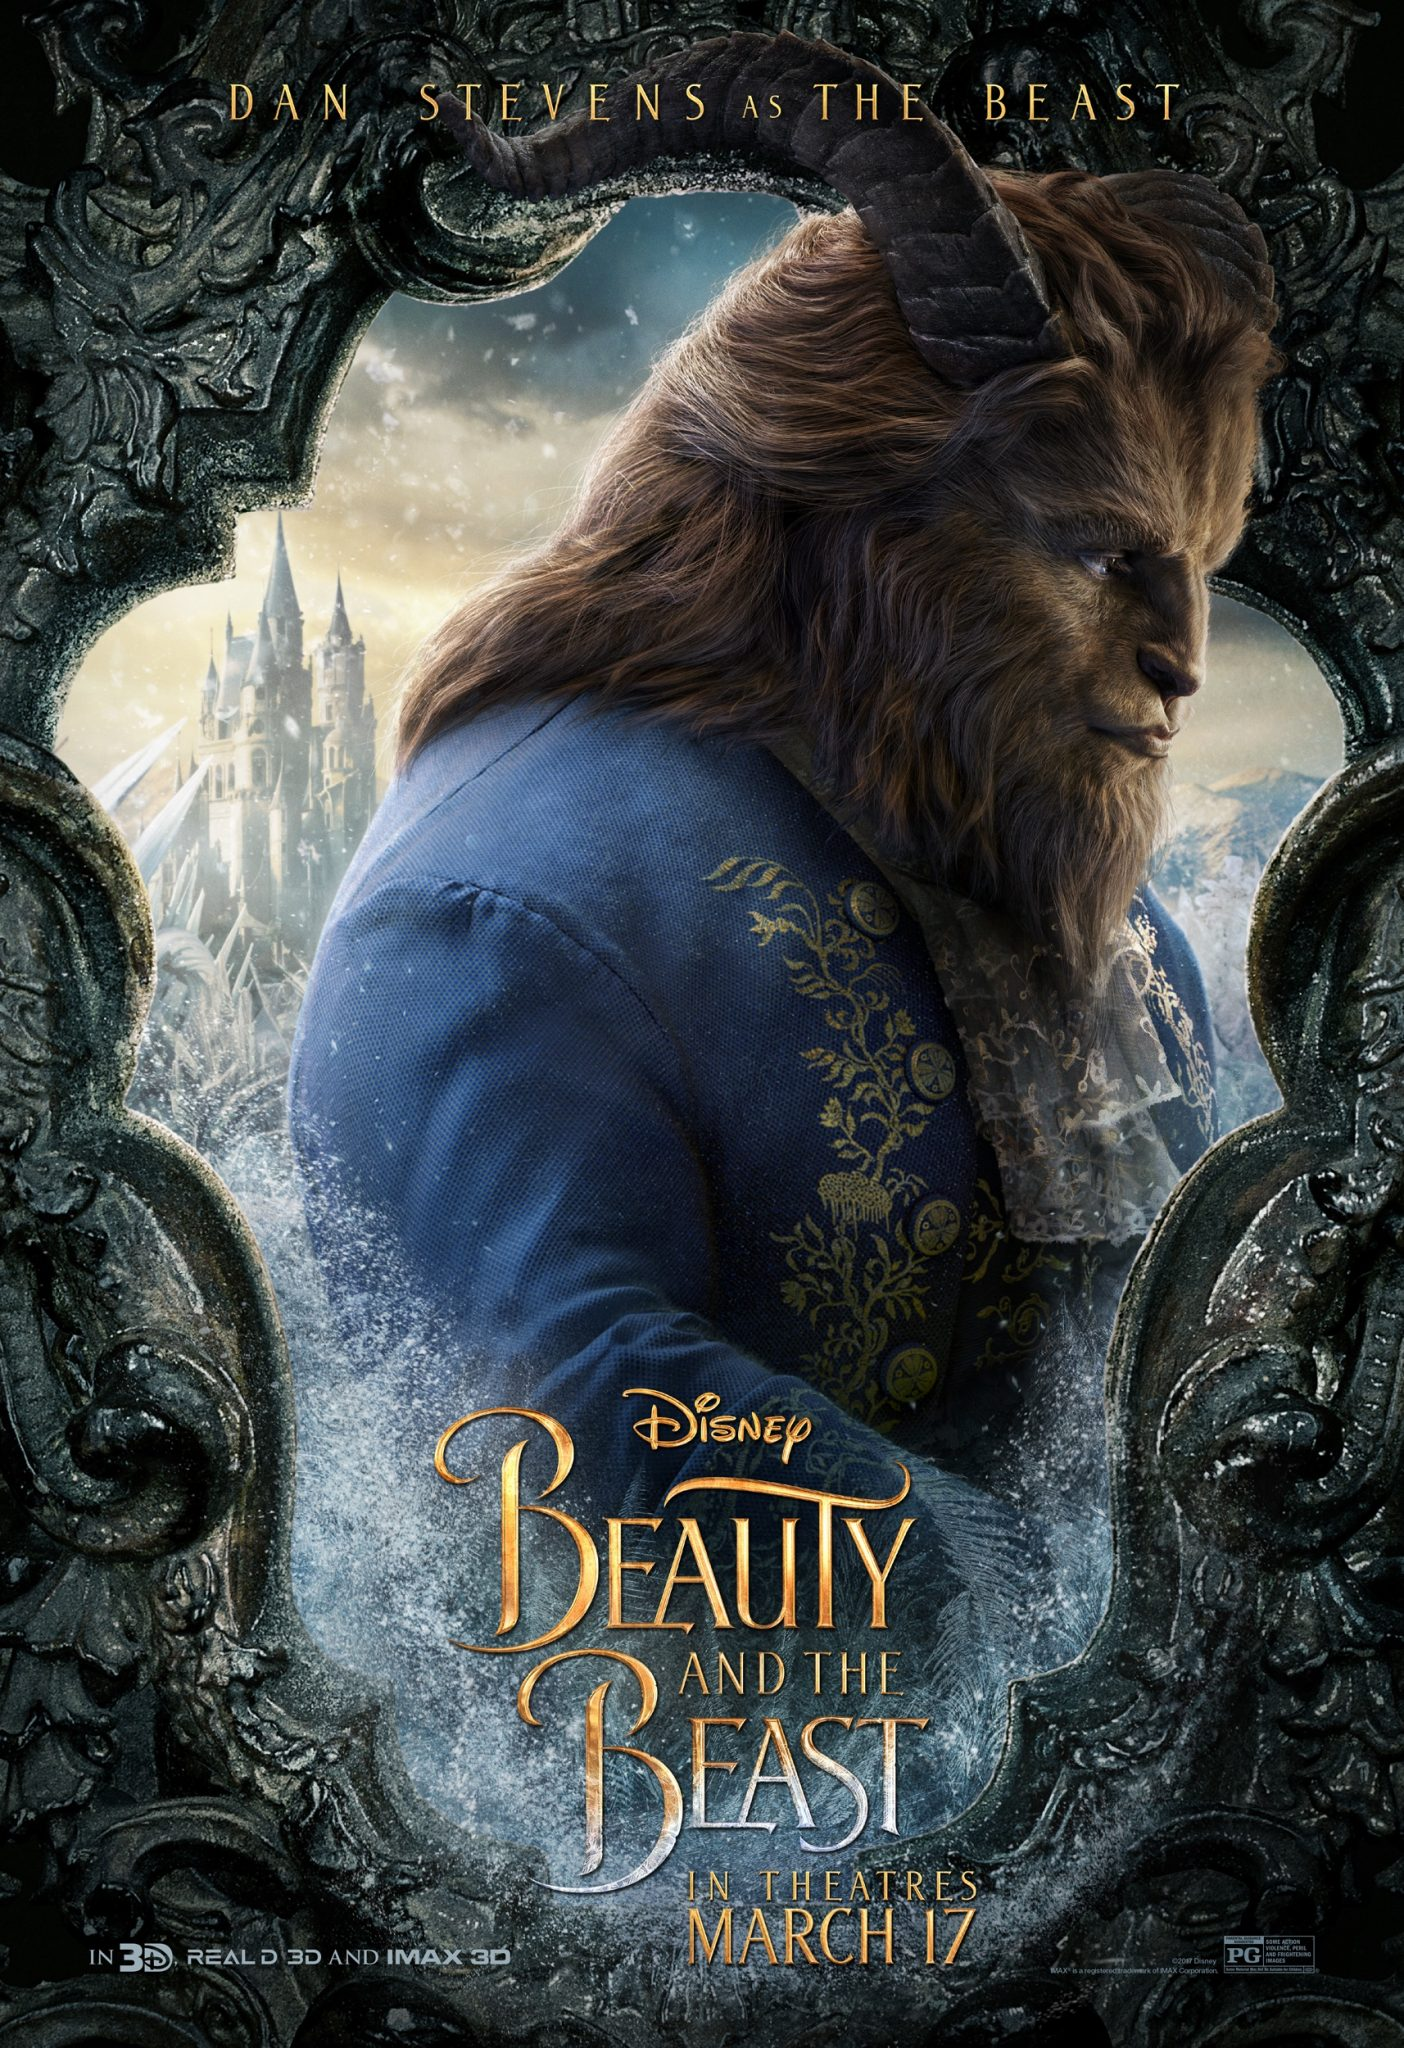 Disney Parks Beauty and the Beast Sneak Peek to Start in February